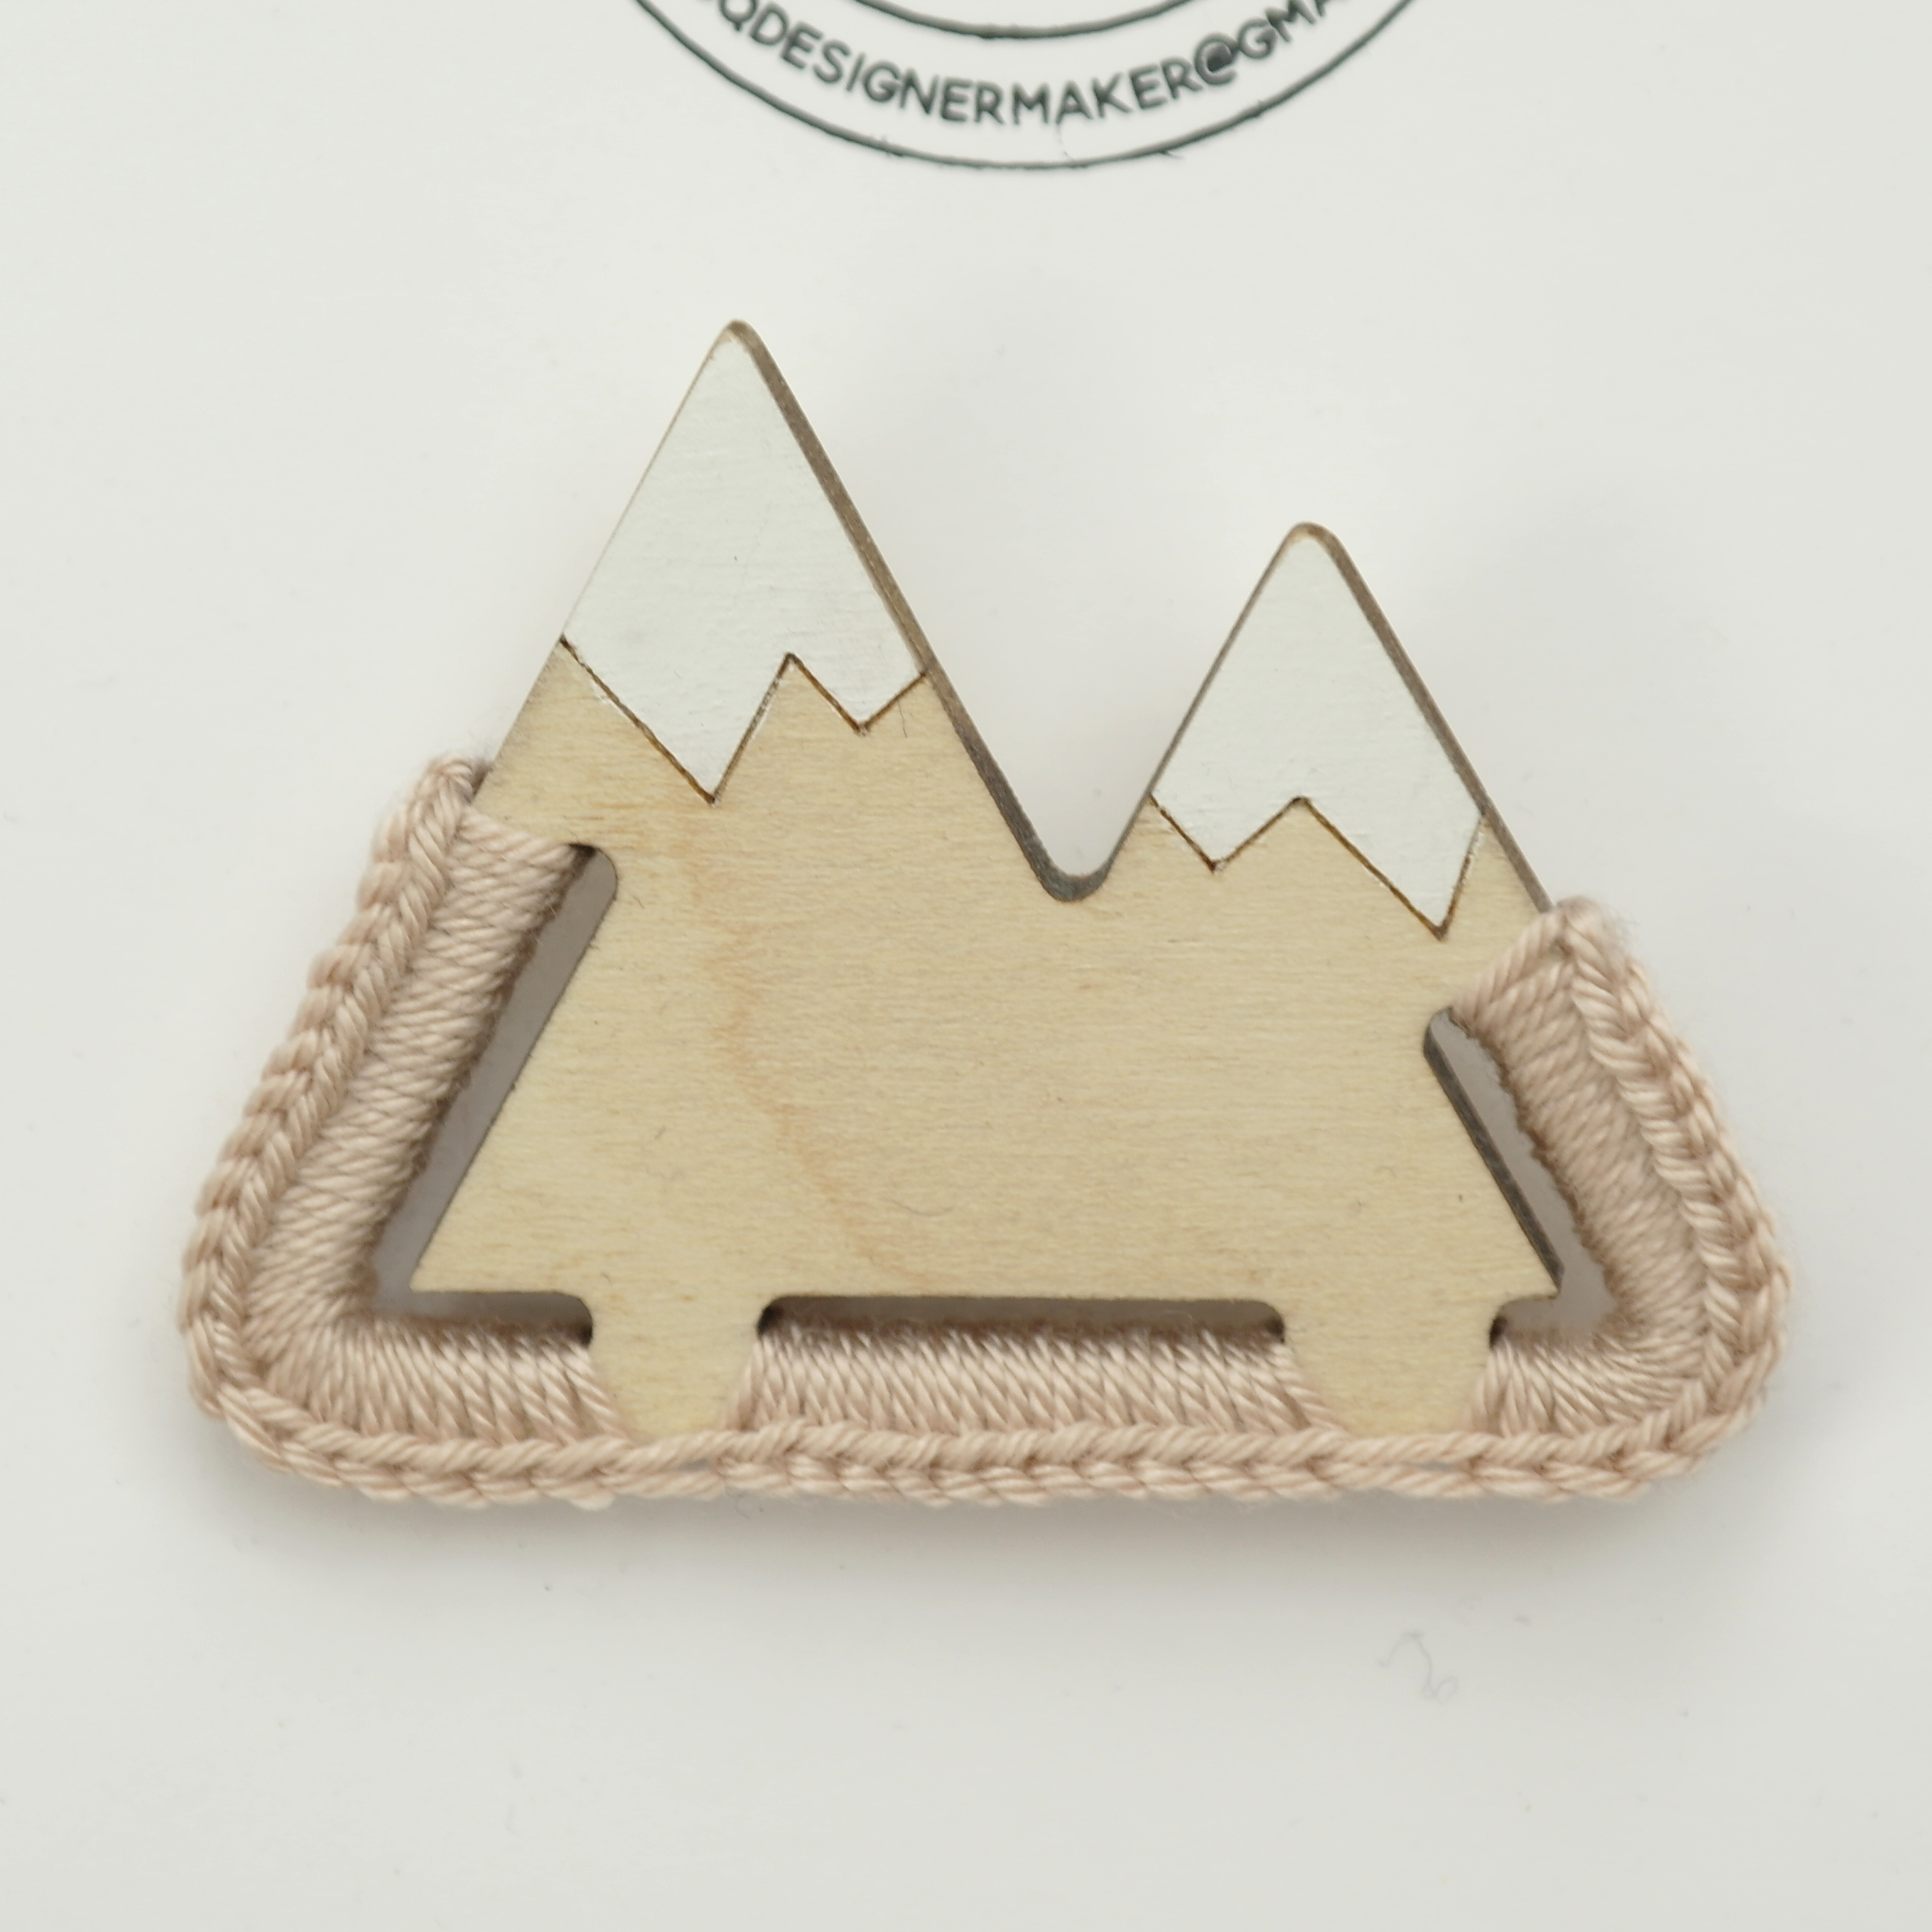 Snow Topped Mountain Brooch - Wood with Crochet